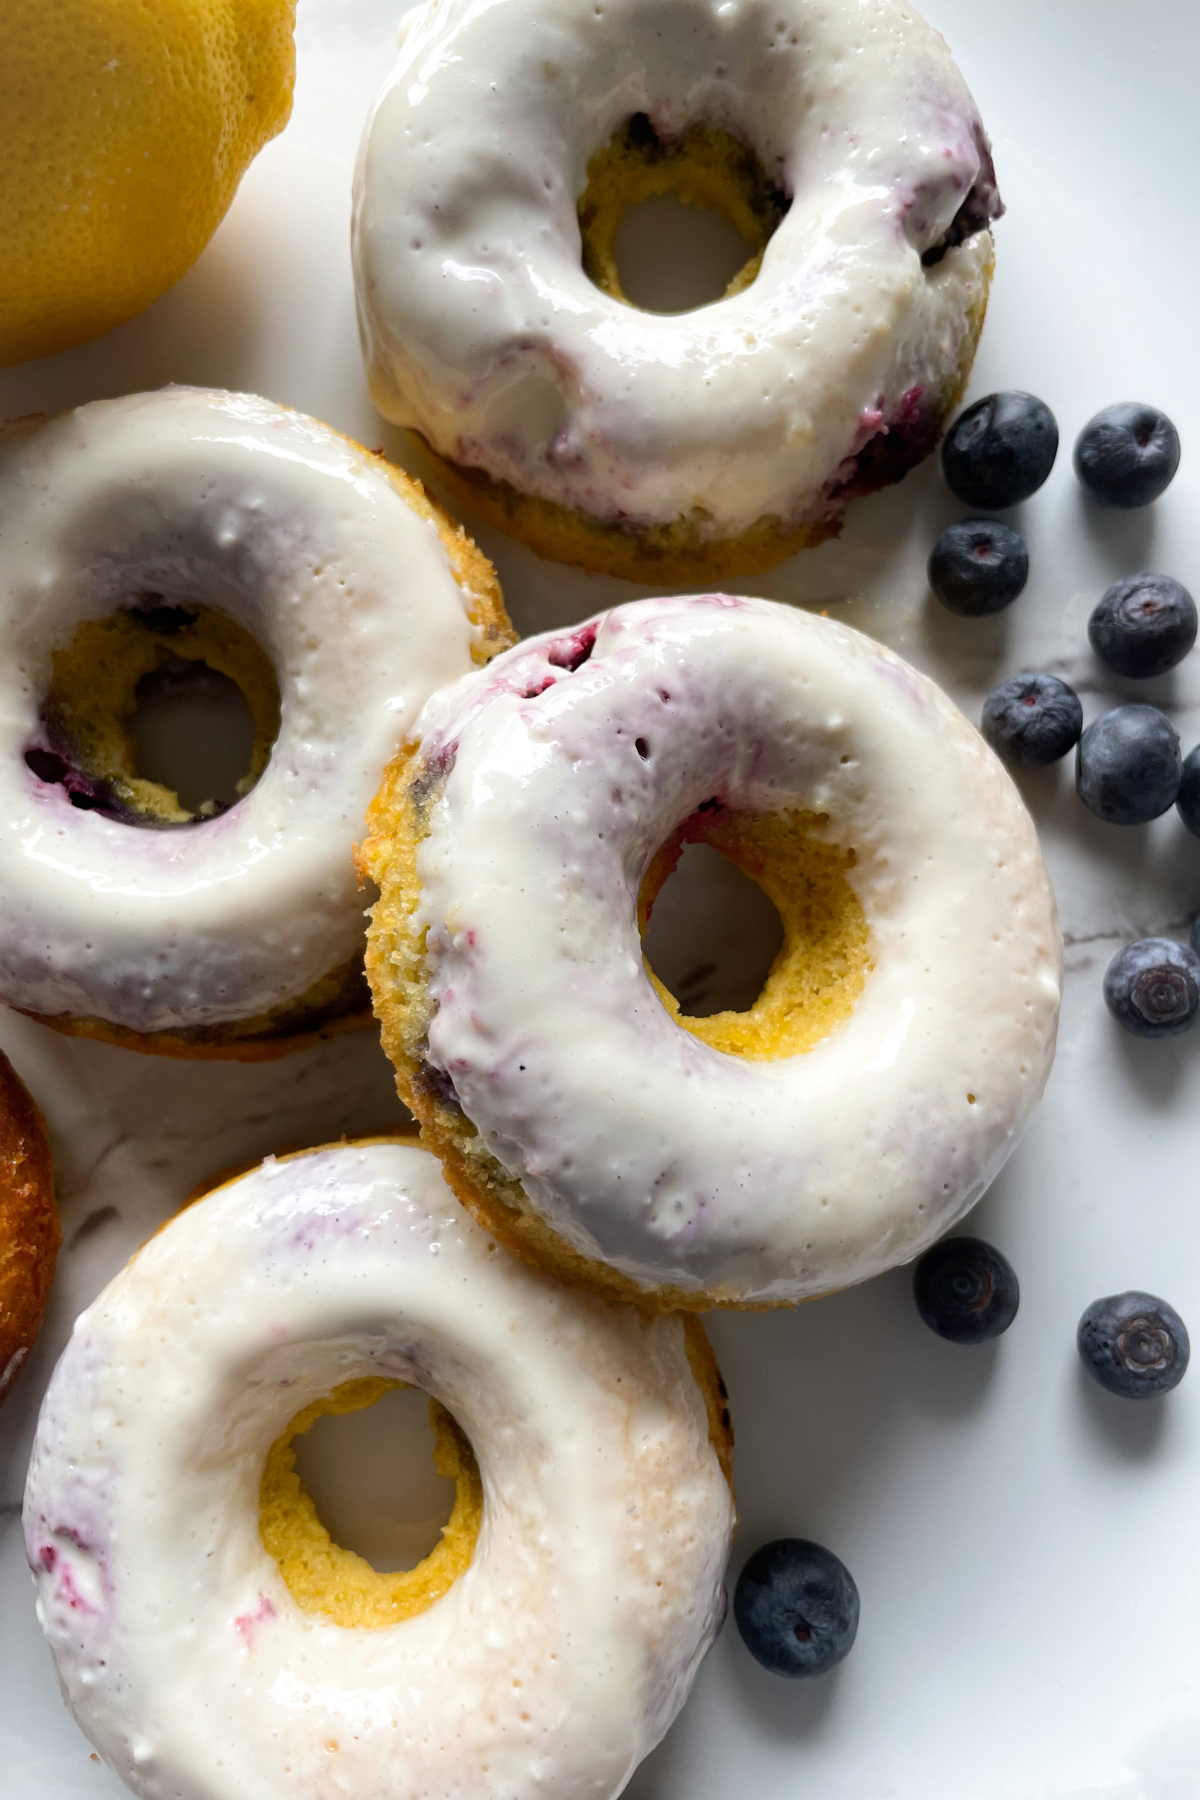 donuts on marble plate with blueberries and lemon